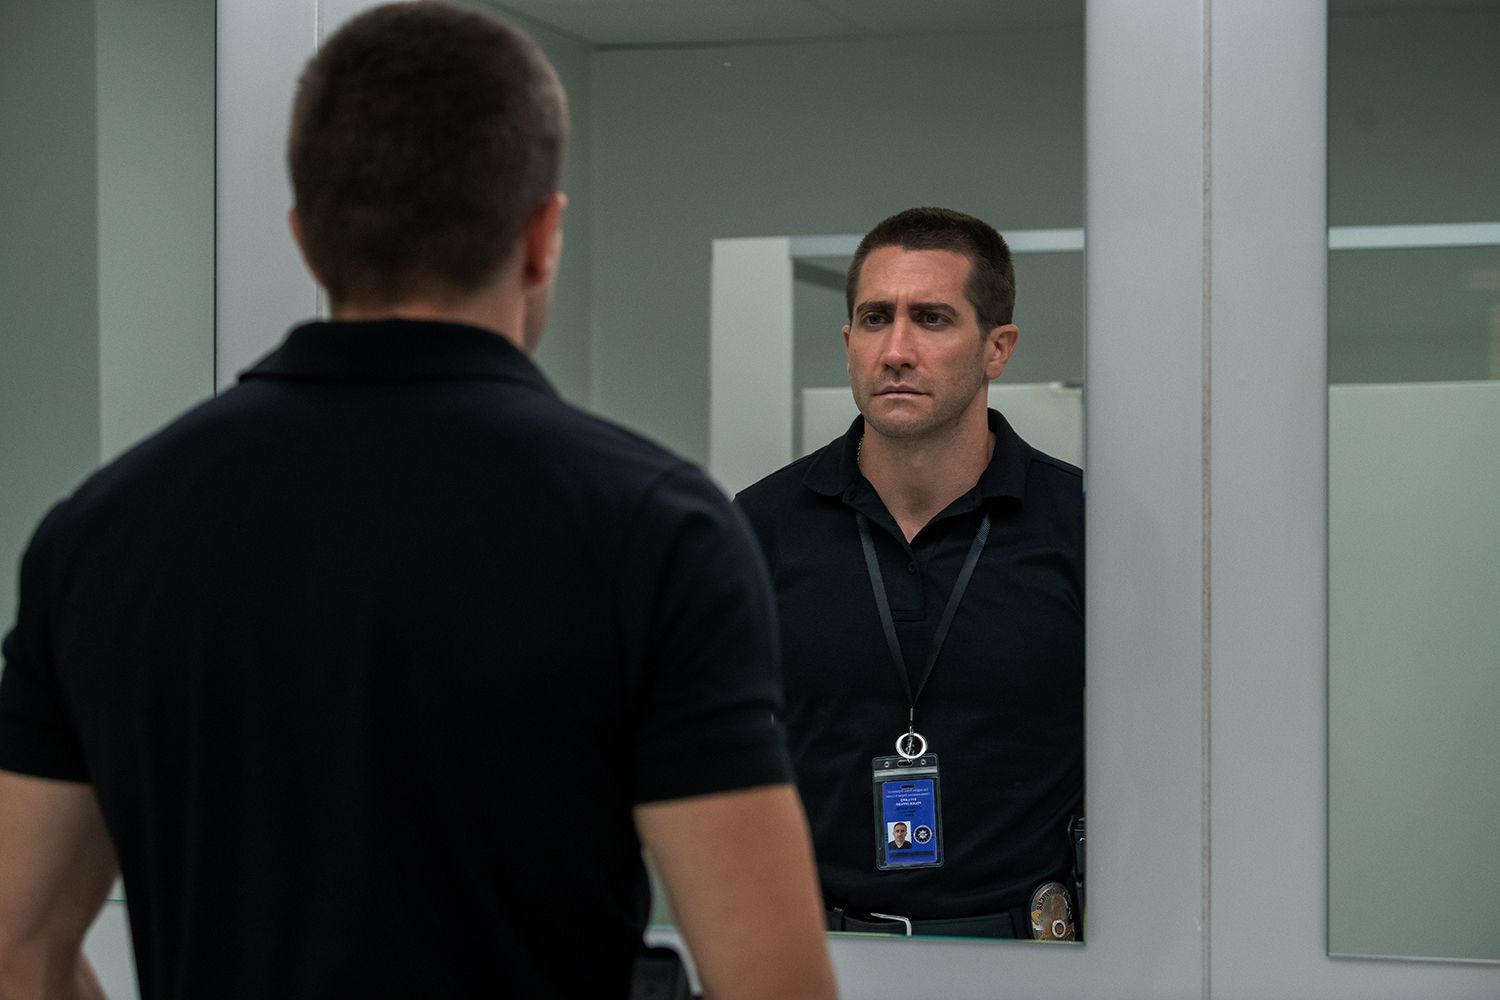 'The Guilty' Review: Jake Gyllenhaal Gives a Powerhouse Performance